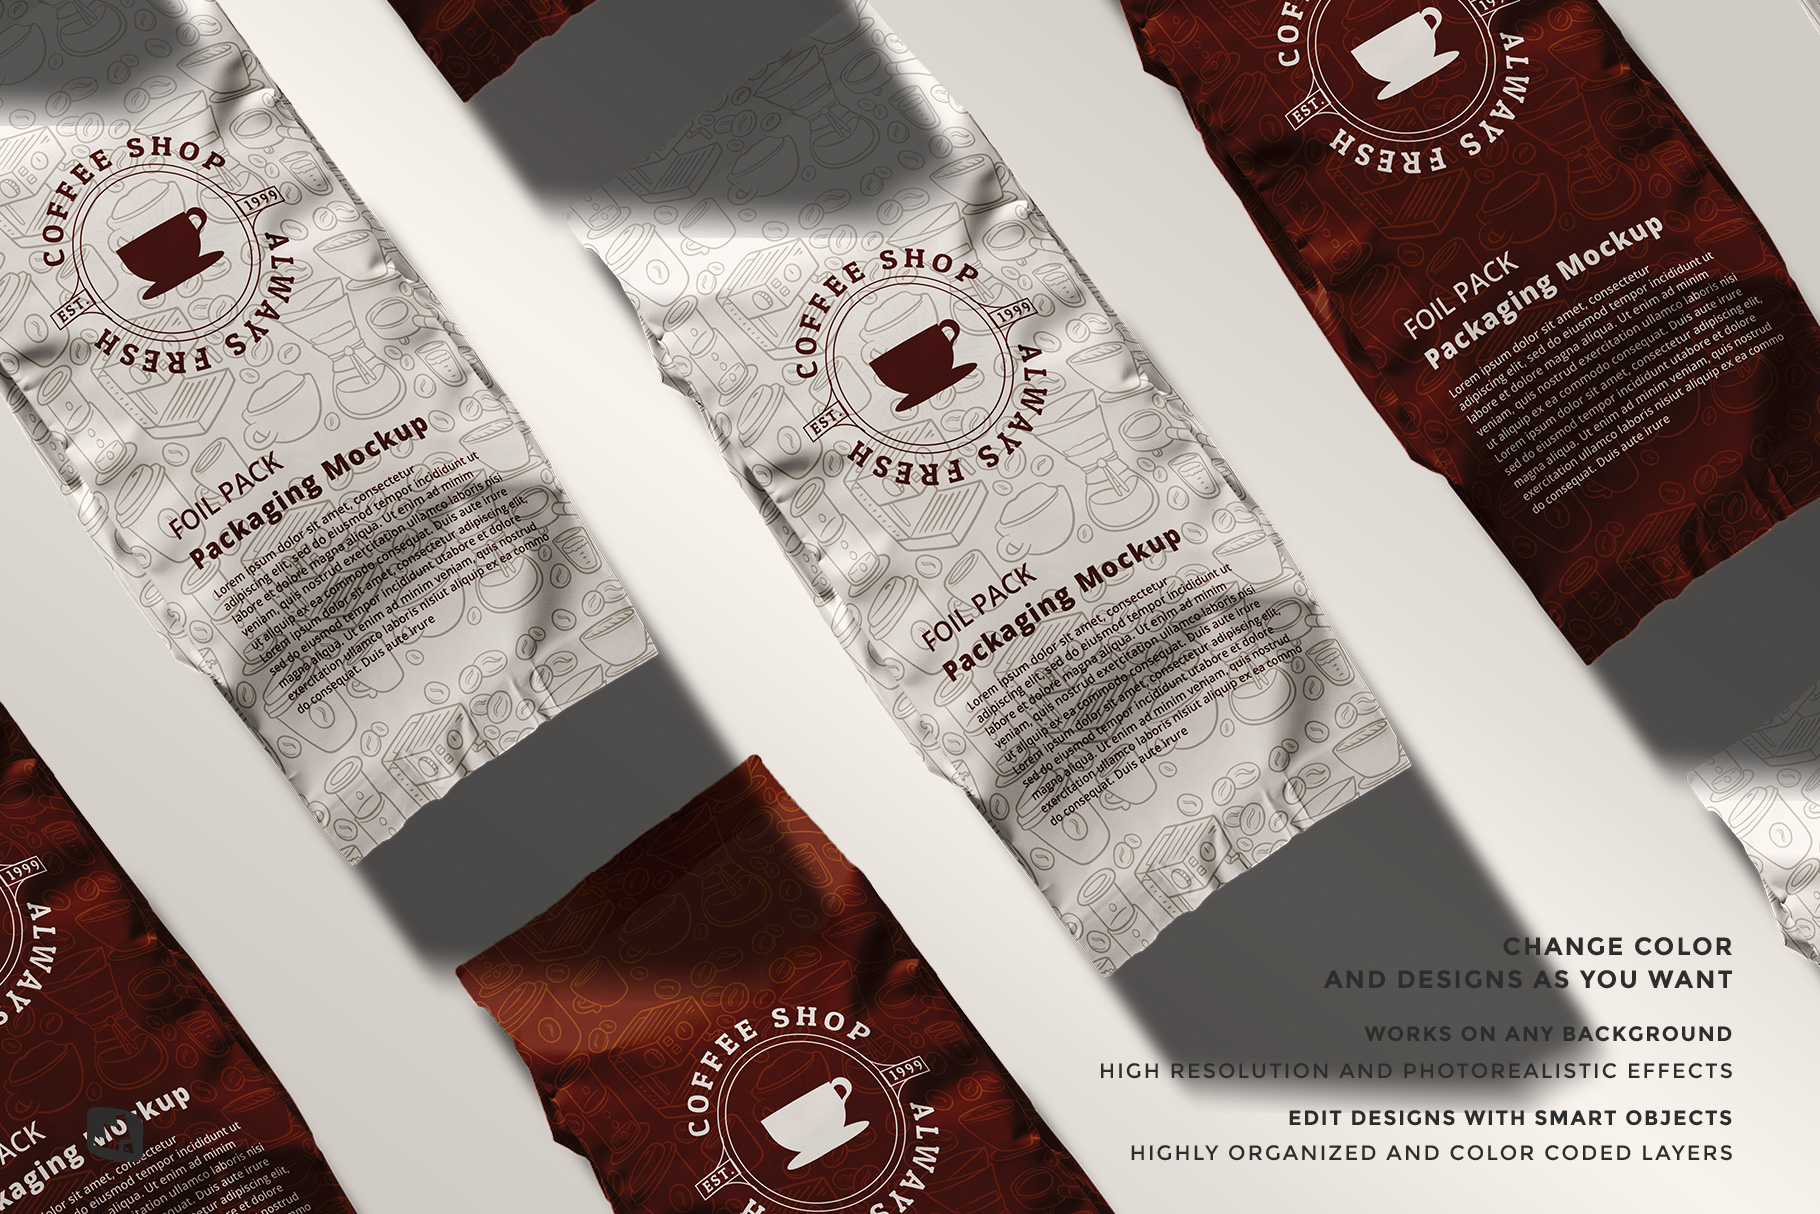 features of the flat lay foil pouch packaging mockup